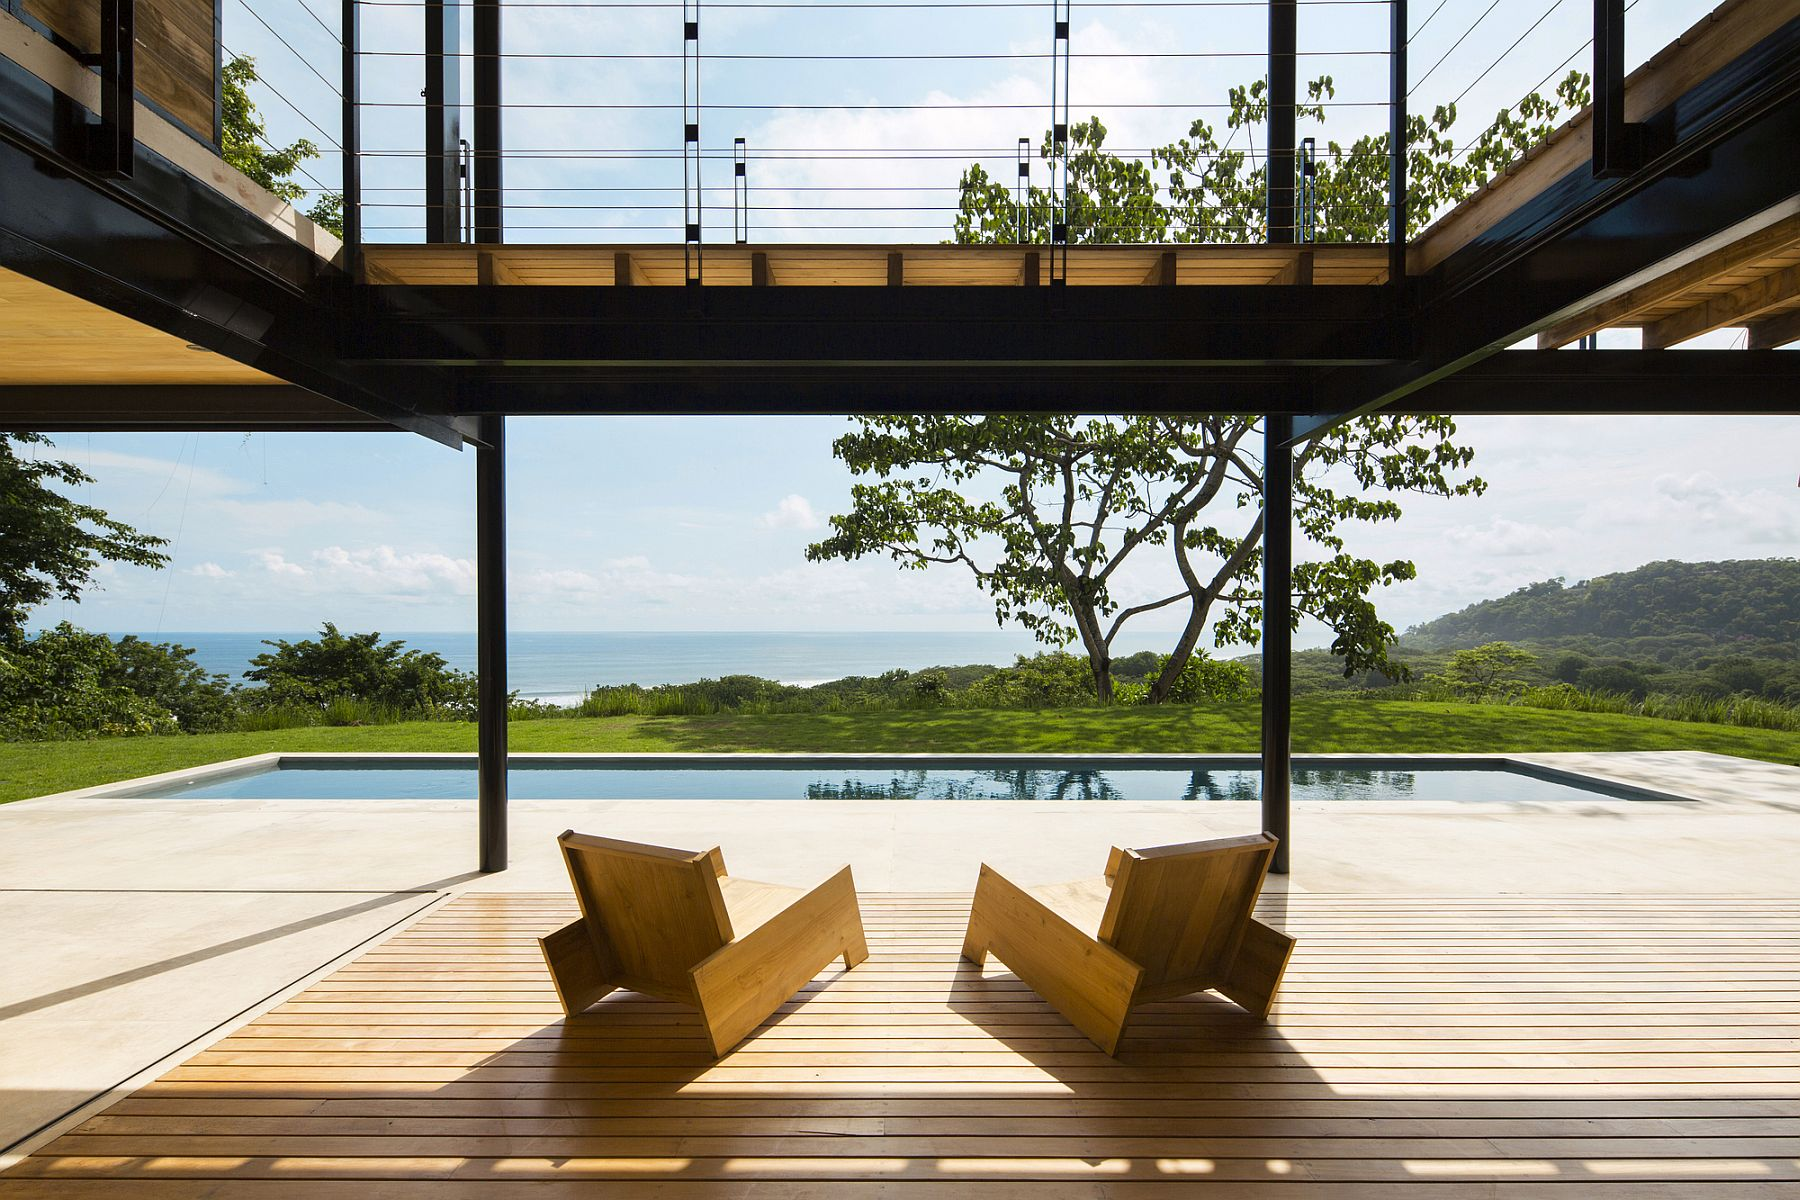 Sweeping wooden terrace and interior opens up to the ocean and jungle views outside